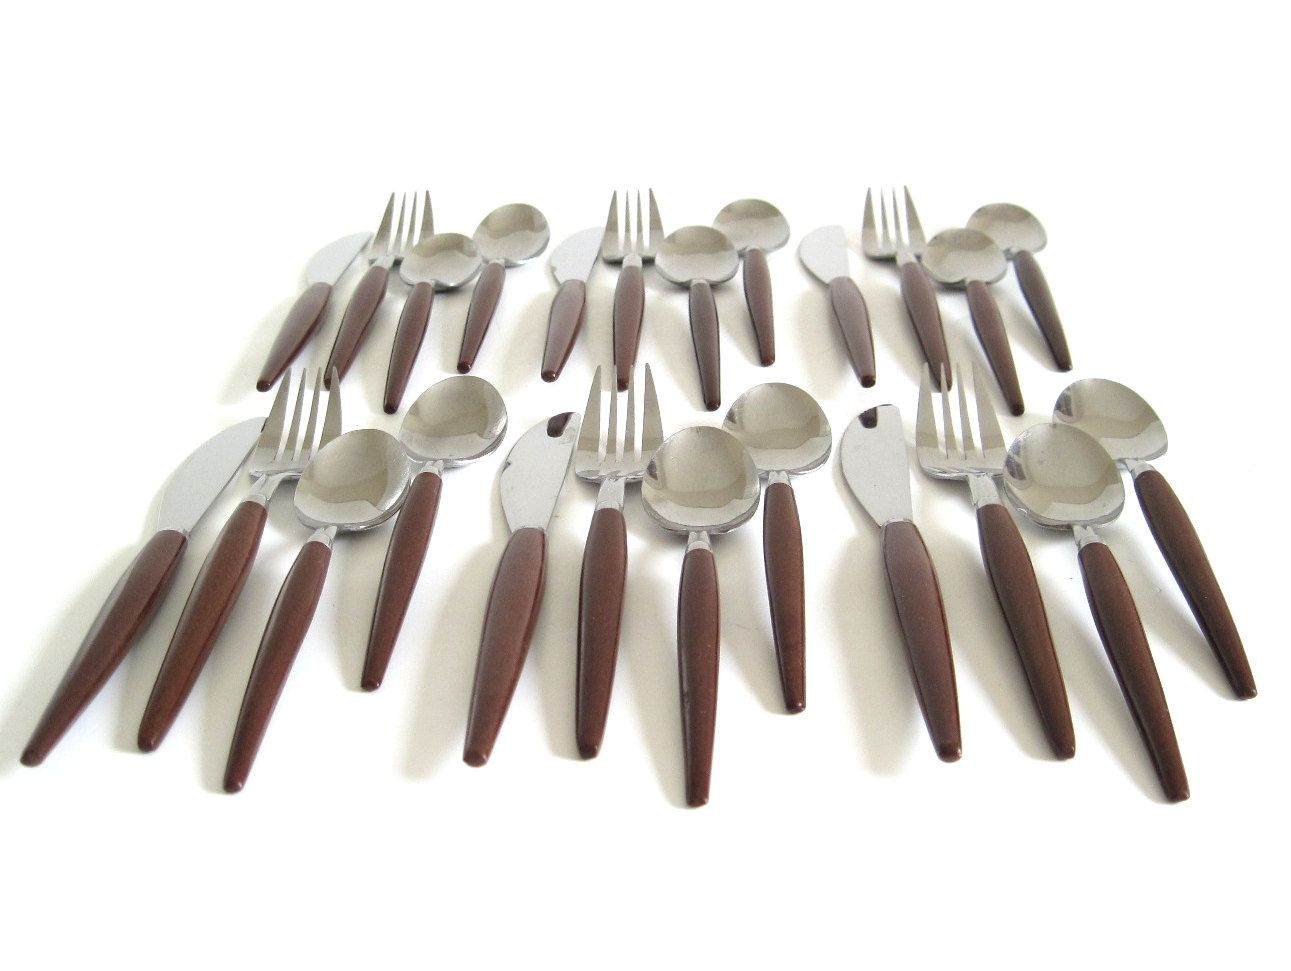 Stainless flatware set wood handles basic service for 6 stainless japan brown handle - Danish modern flatware ...